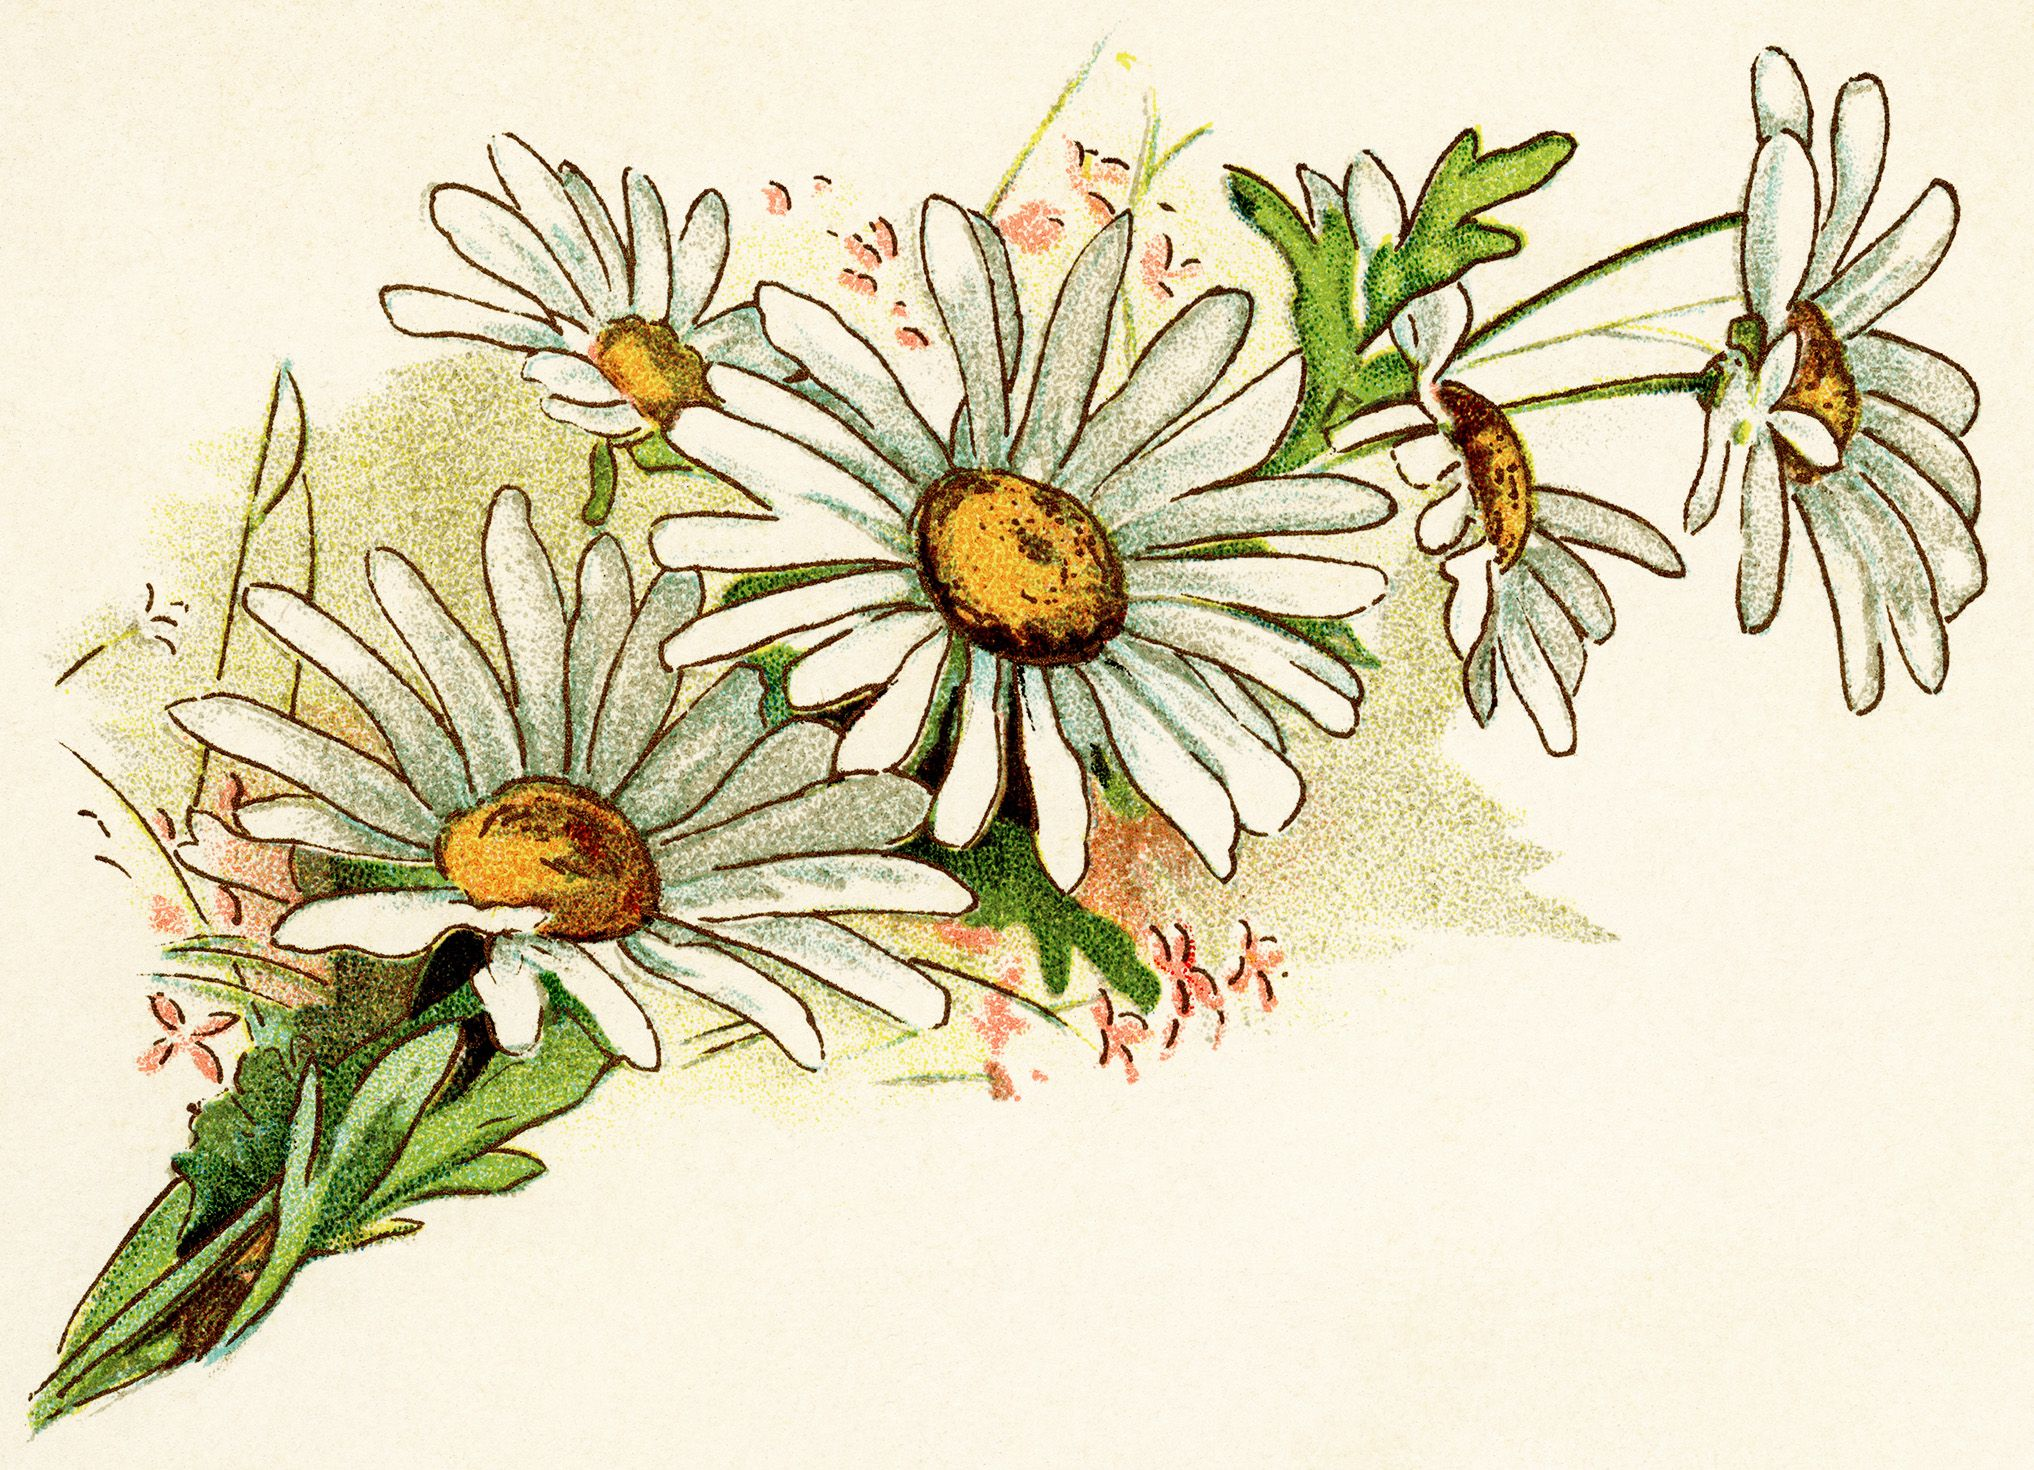 vintage daisy image free digital floral graphics cluster of daisies illustration old fashioned daisy clipart bouquet of daisies printable [ 2034 x 1470 Pixel ]